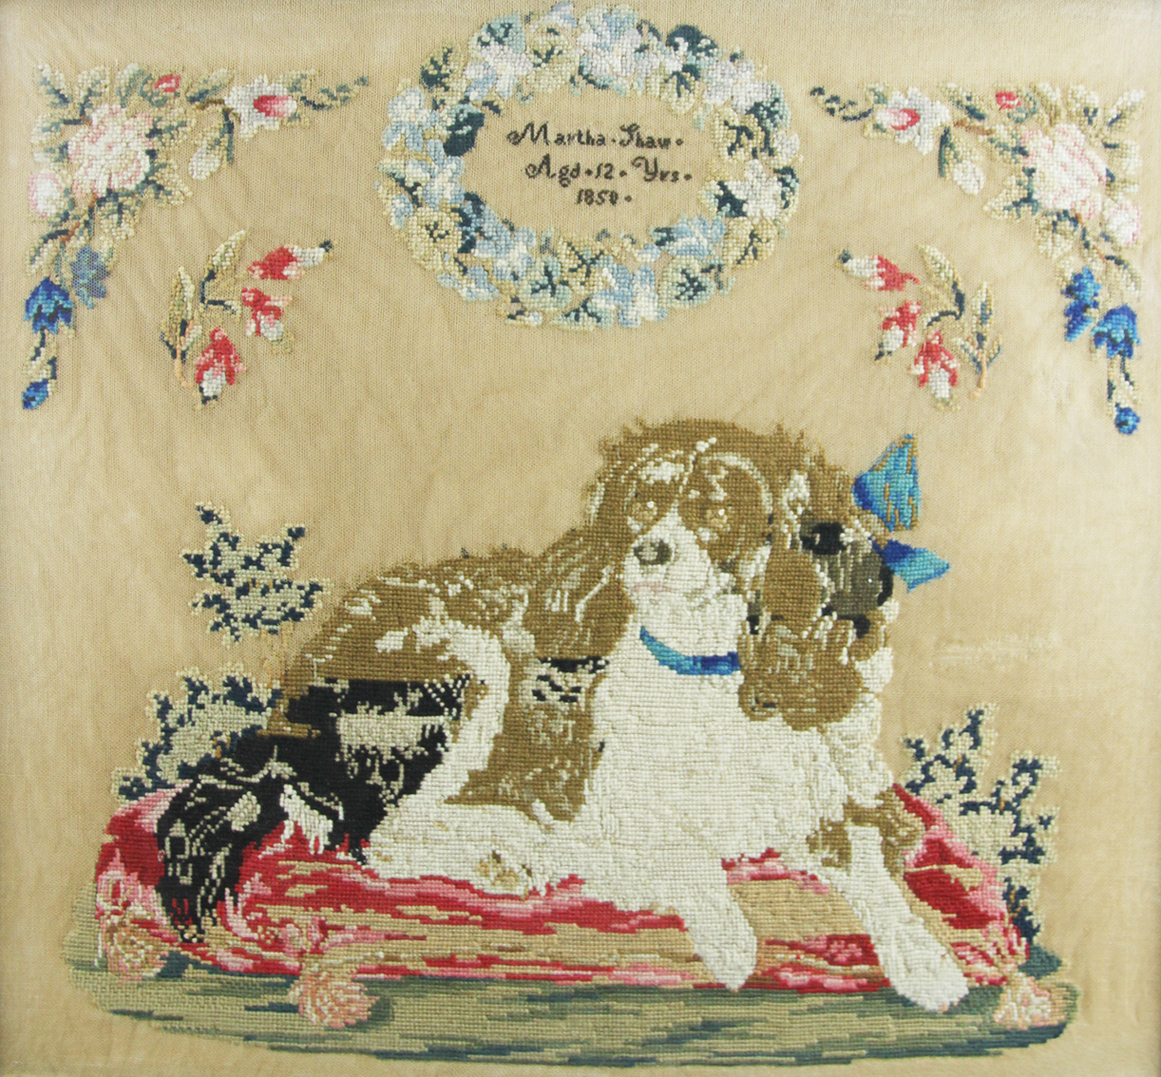 Click to see full size: firesceen with needlepoint of a Cavalier King Charles Spanie by Martha Shaw